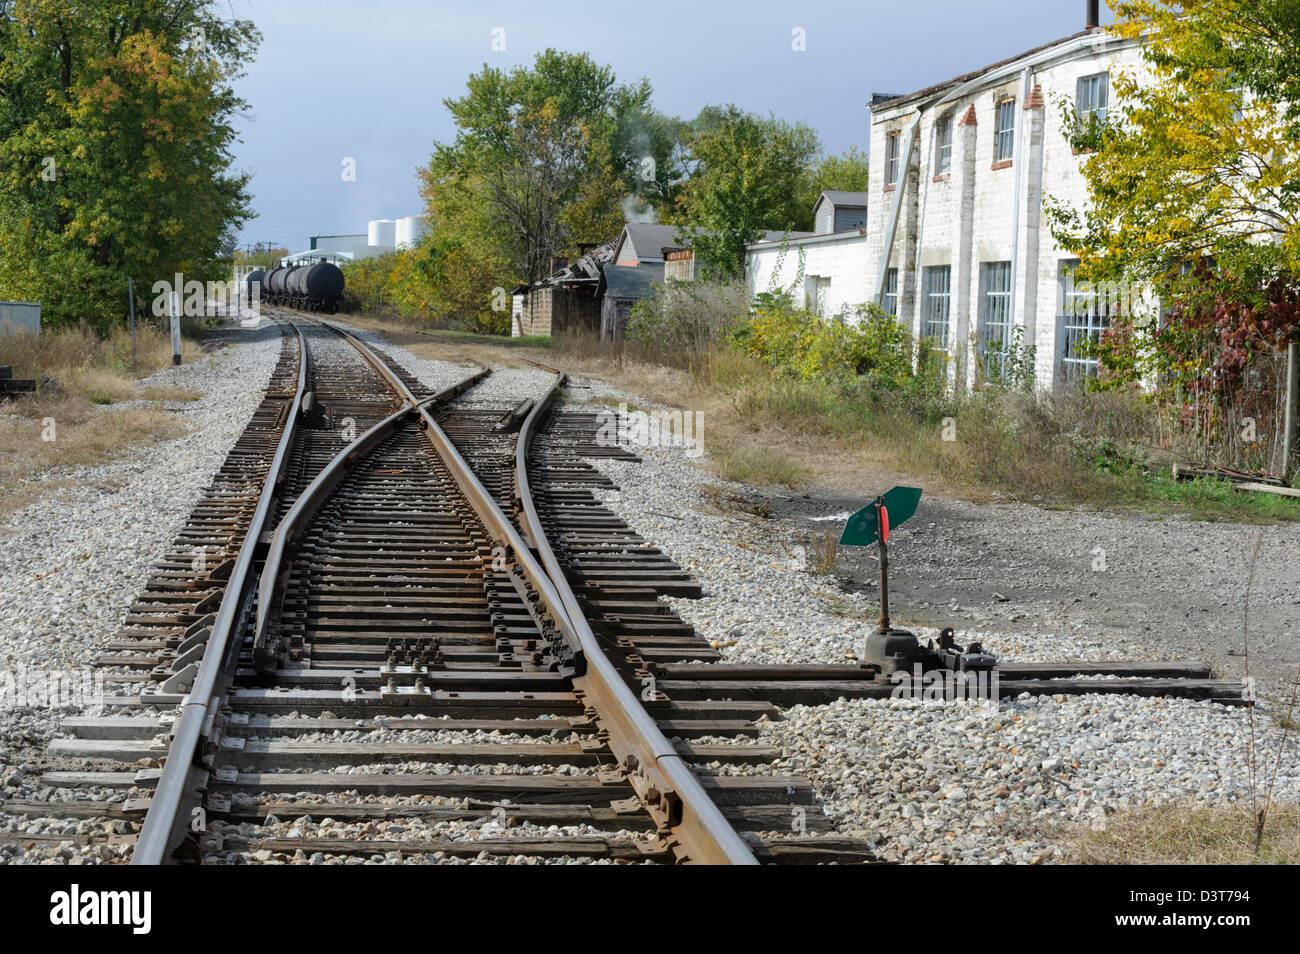 Railroad tracks and industrial siding to factories, American, USA - Stock Image